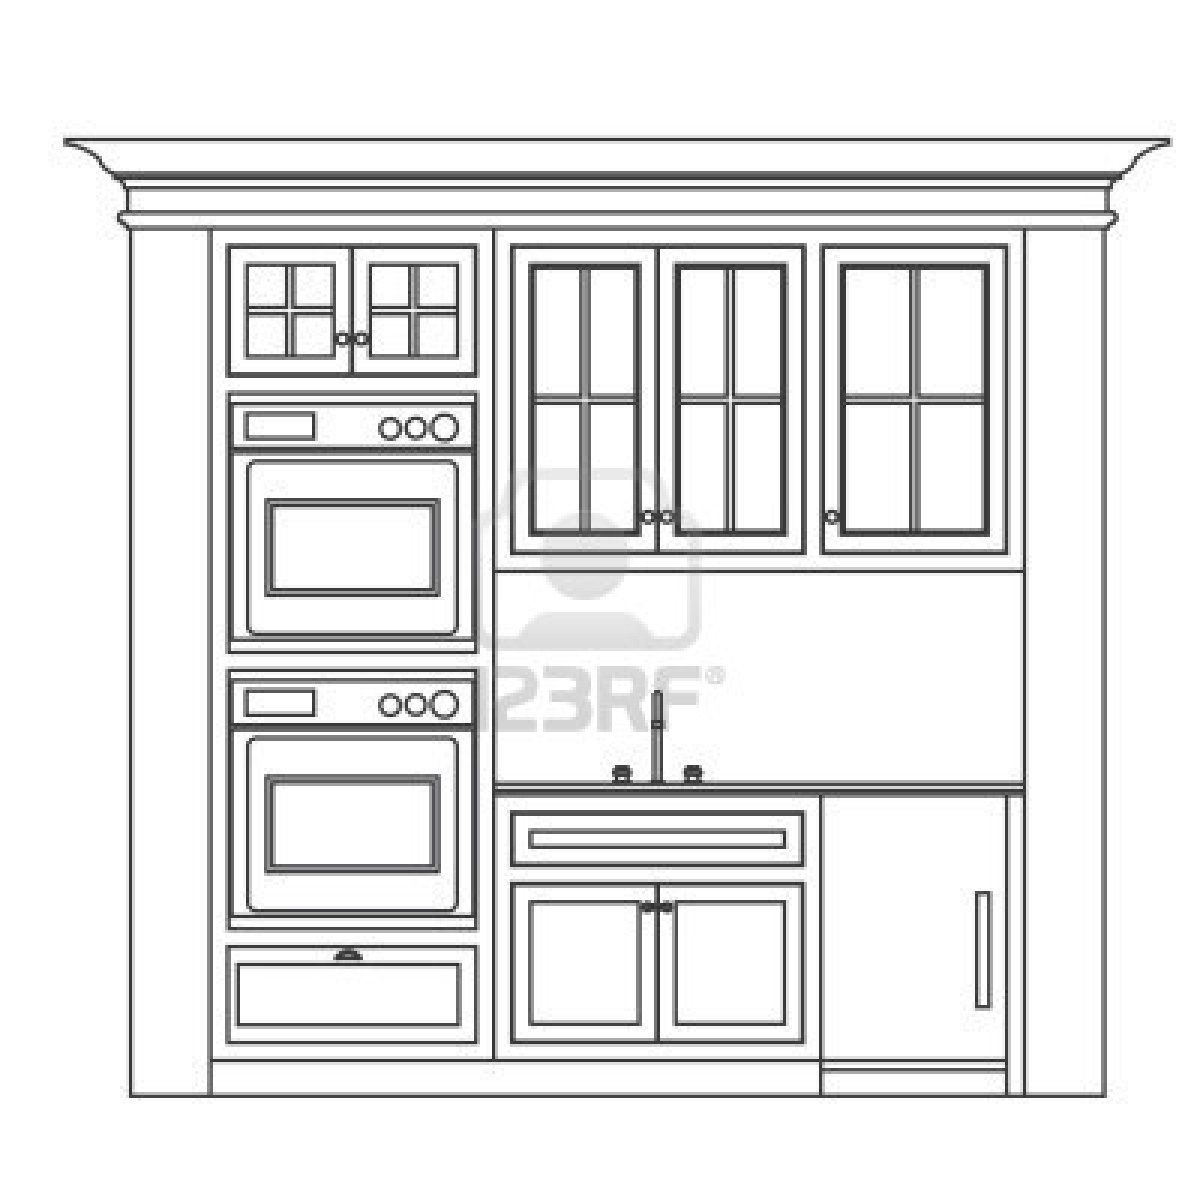 Kitchen Cabinet Design Drawing Kitchen Elevation Line  : 45100d36399b8fd50f34f3d2e8a45fe2 from www.pinterest.com size 1200 x 1200 jpeg 151kB